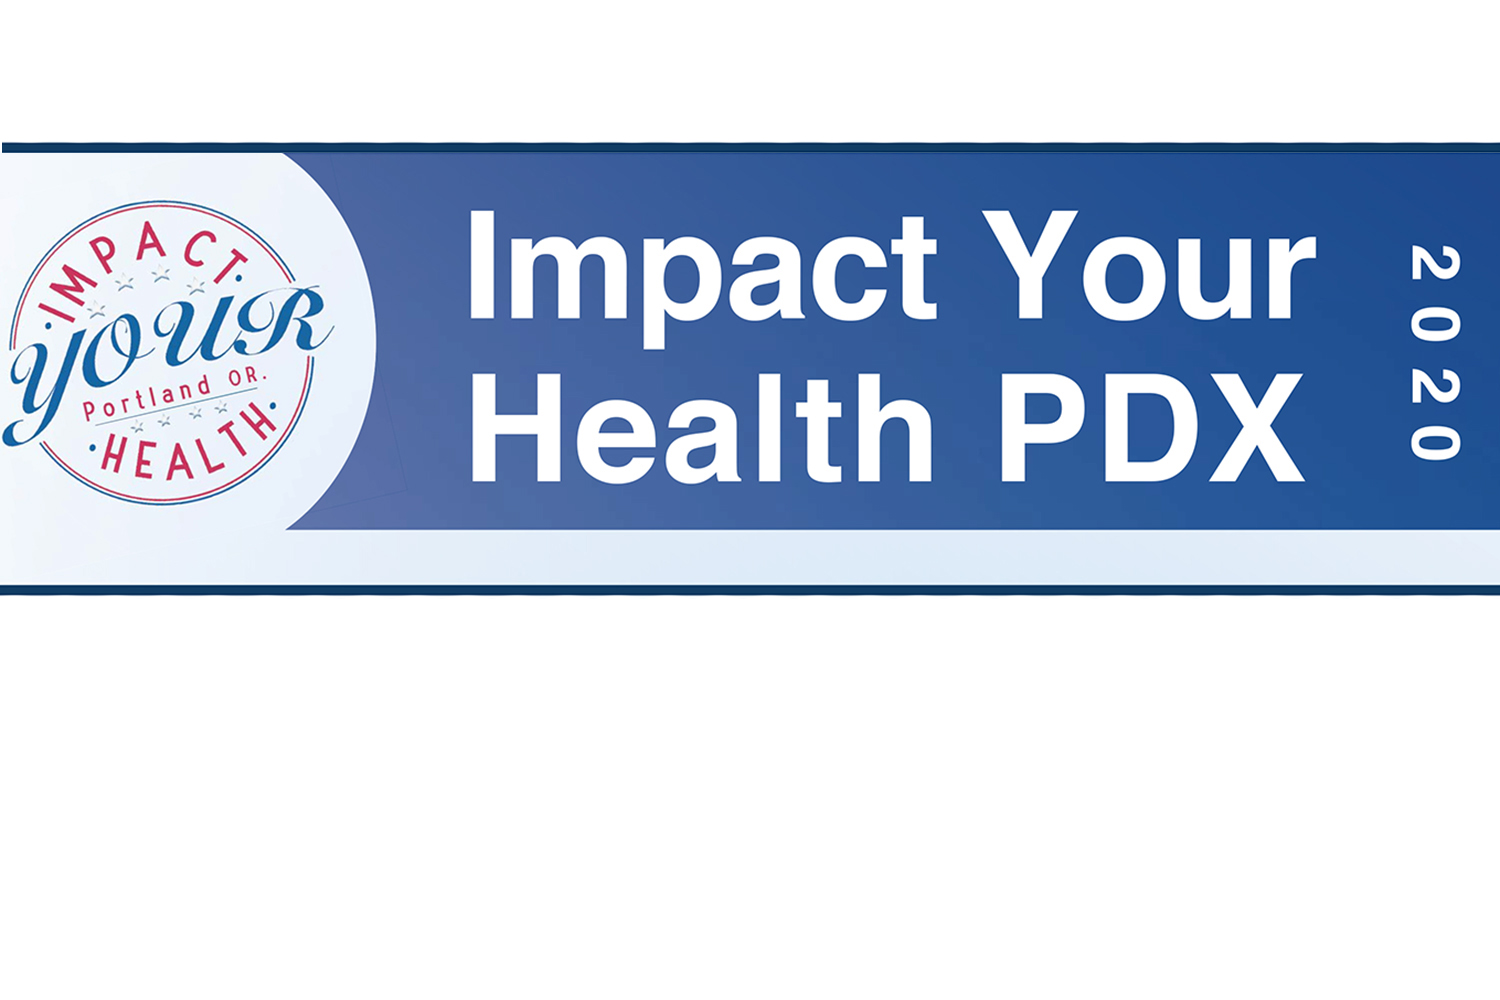 Impact Your Health 2020 Clinics on Hold